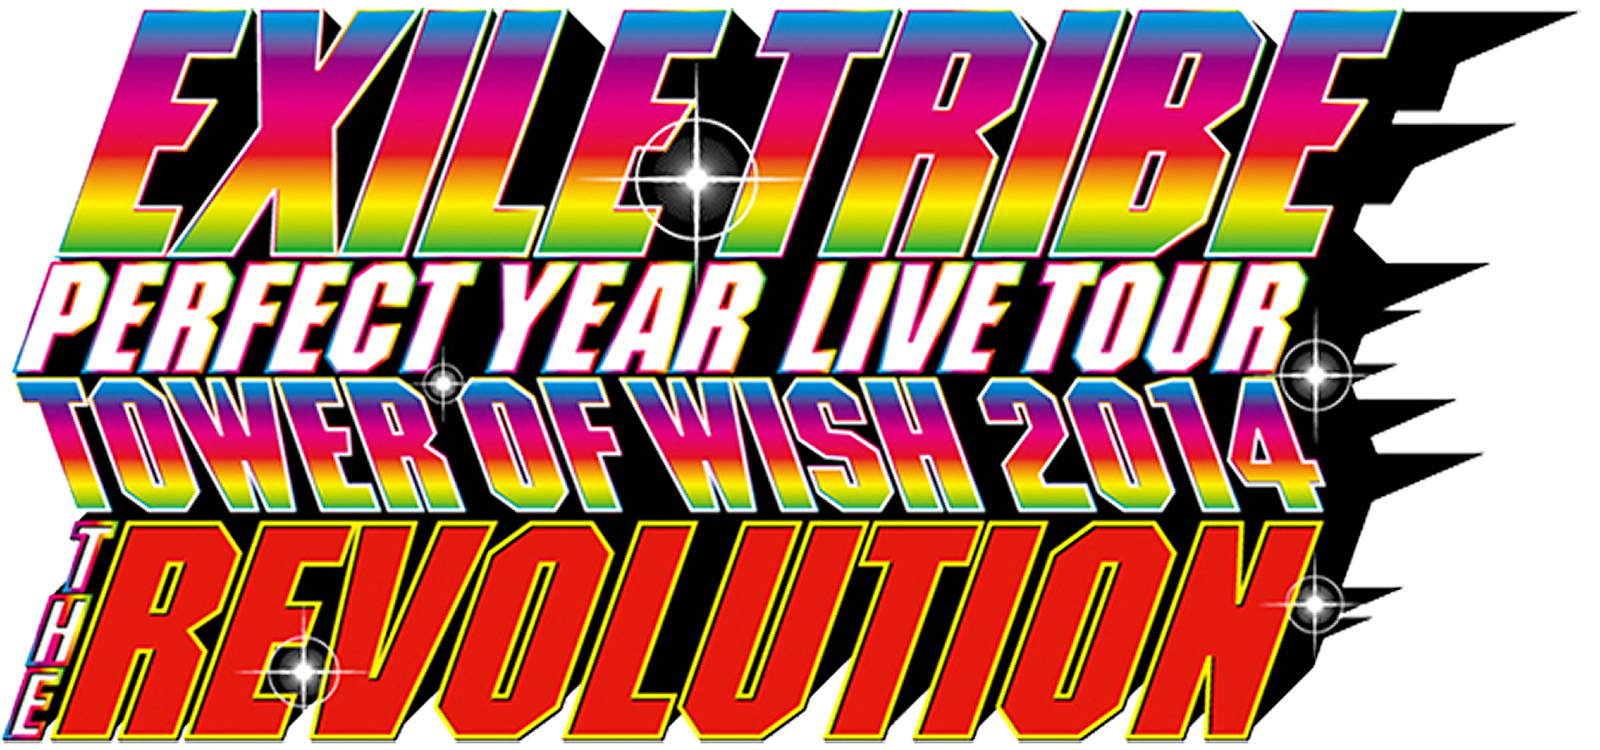 EXILE TRIBE PERFECT YEAR LIVE TOUR TOWER OF WISH 2014 ~THE REVOLUTION~のツアーロゴ